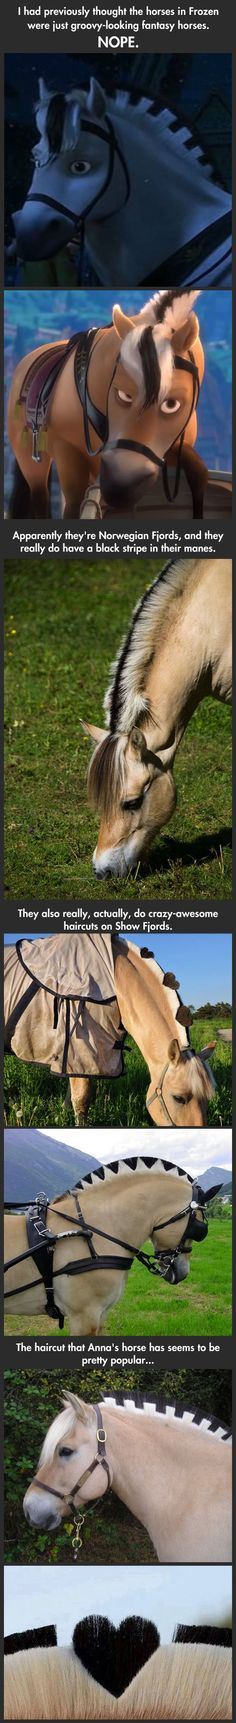 I love Norwegian Fiords! Theyre like teddy bear horses!!! <--I love them too, and was SO excited to see that they had them in the movie, since the movie was based out of Norway...!